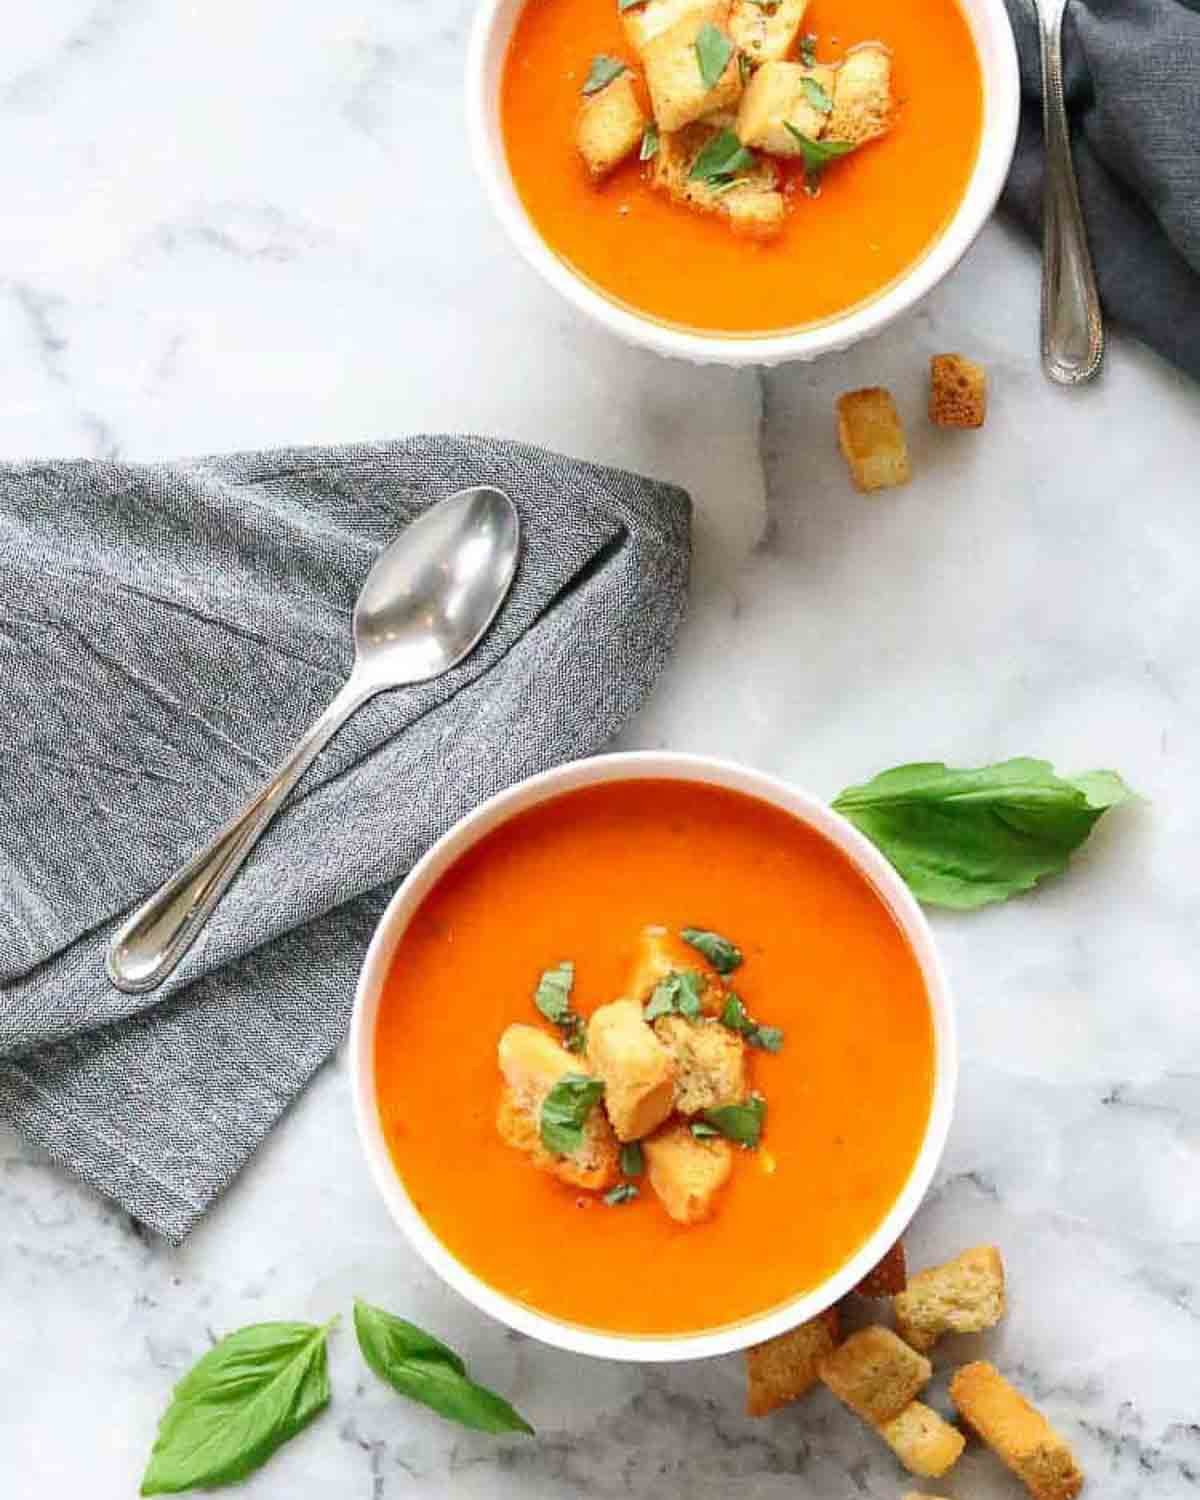 2 bowls of tomato soup topped with croutons and basil. There is a spoon, croutons and basil leaves in the background.